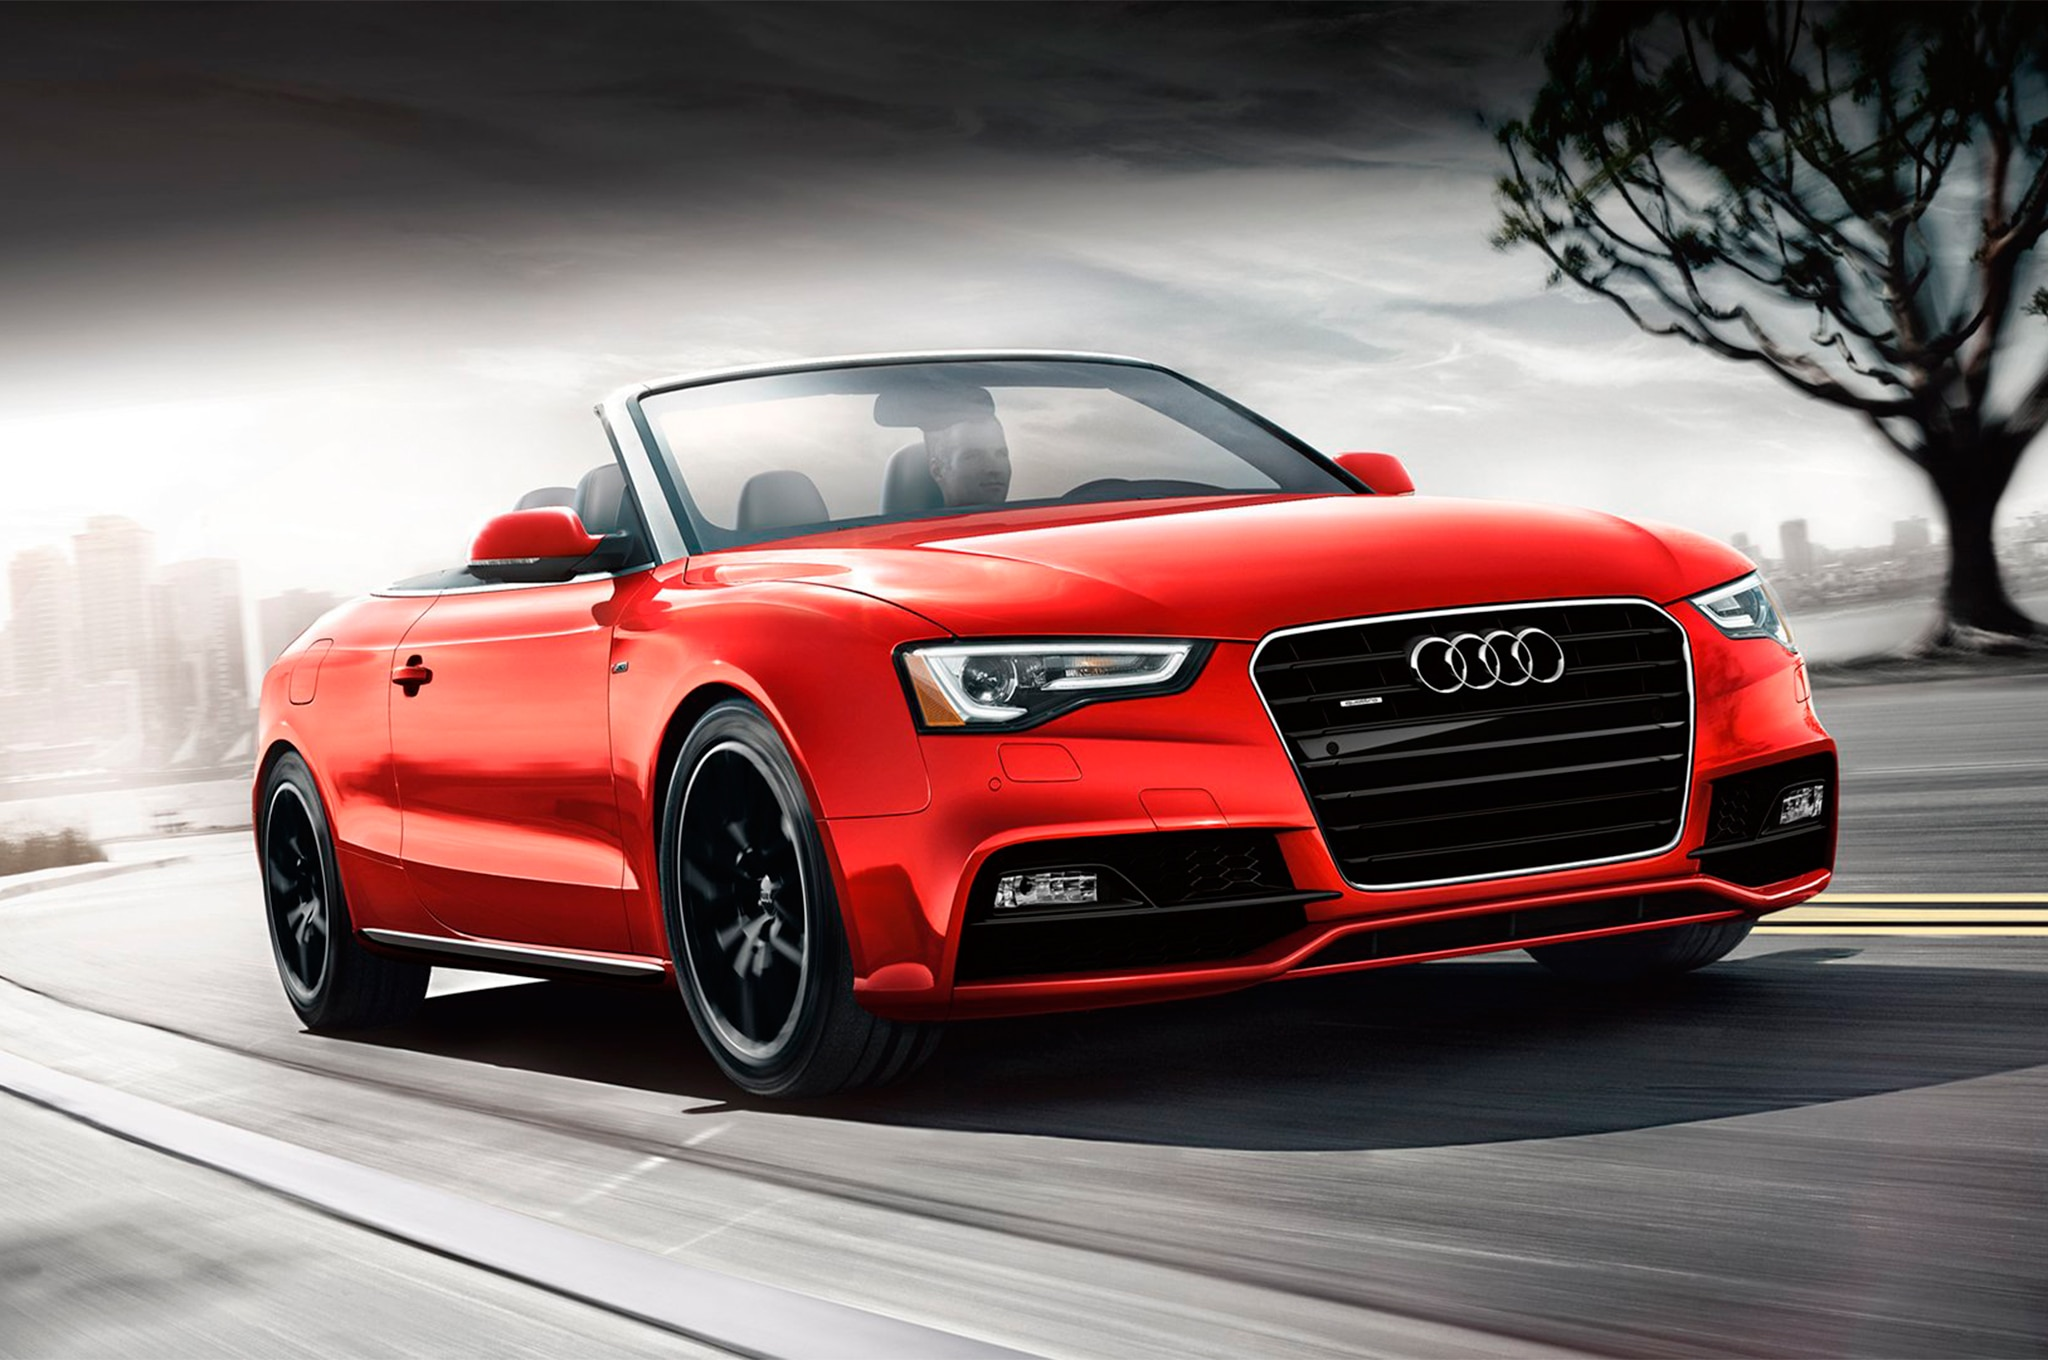 five door audi a5 s5 sportback debuts for europe automobile magazine. Black Bedroom Furniture Sets. Home Design Ideas